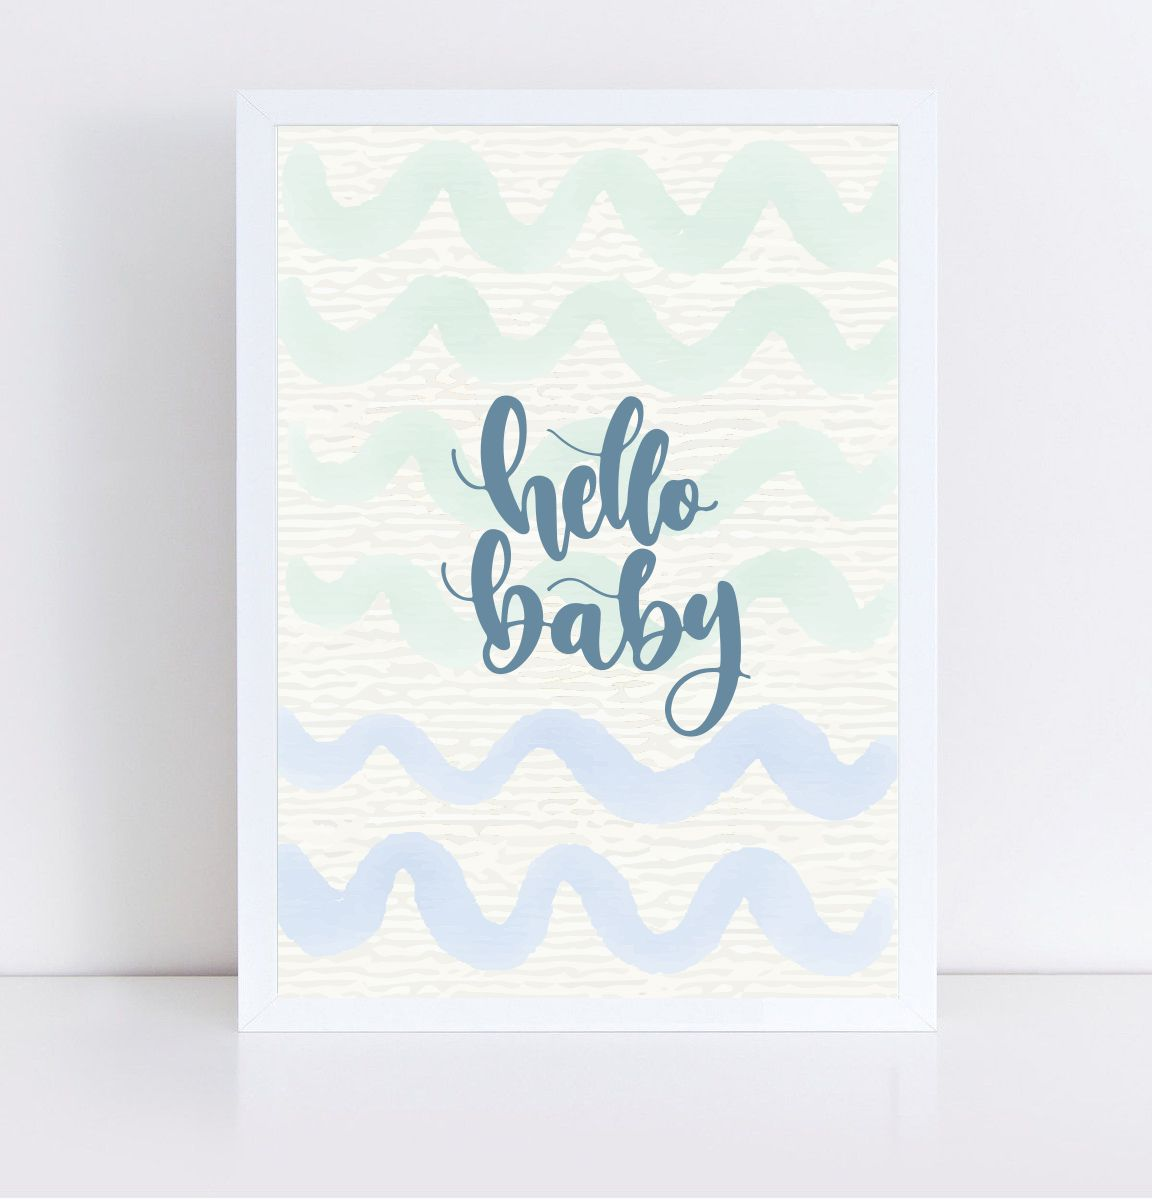 Quadro Decorativo Hello Baby  - TaColado